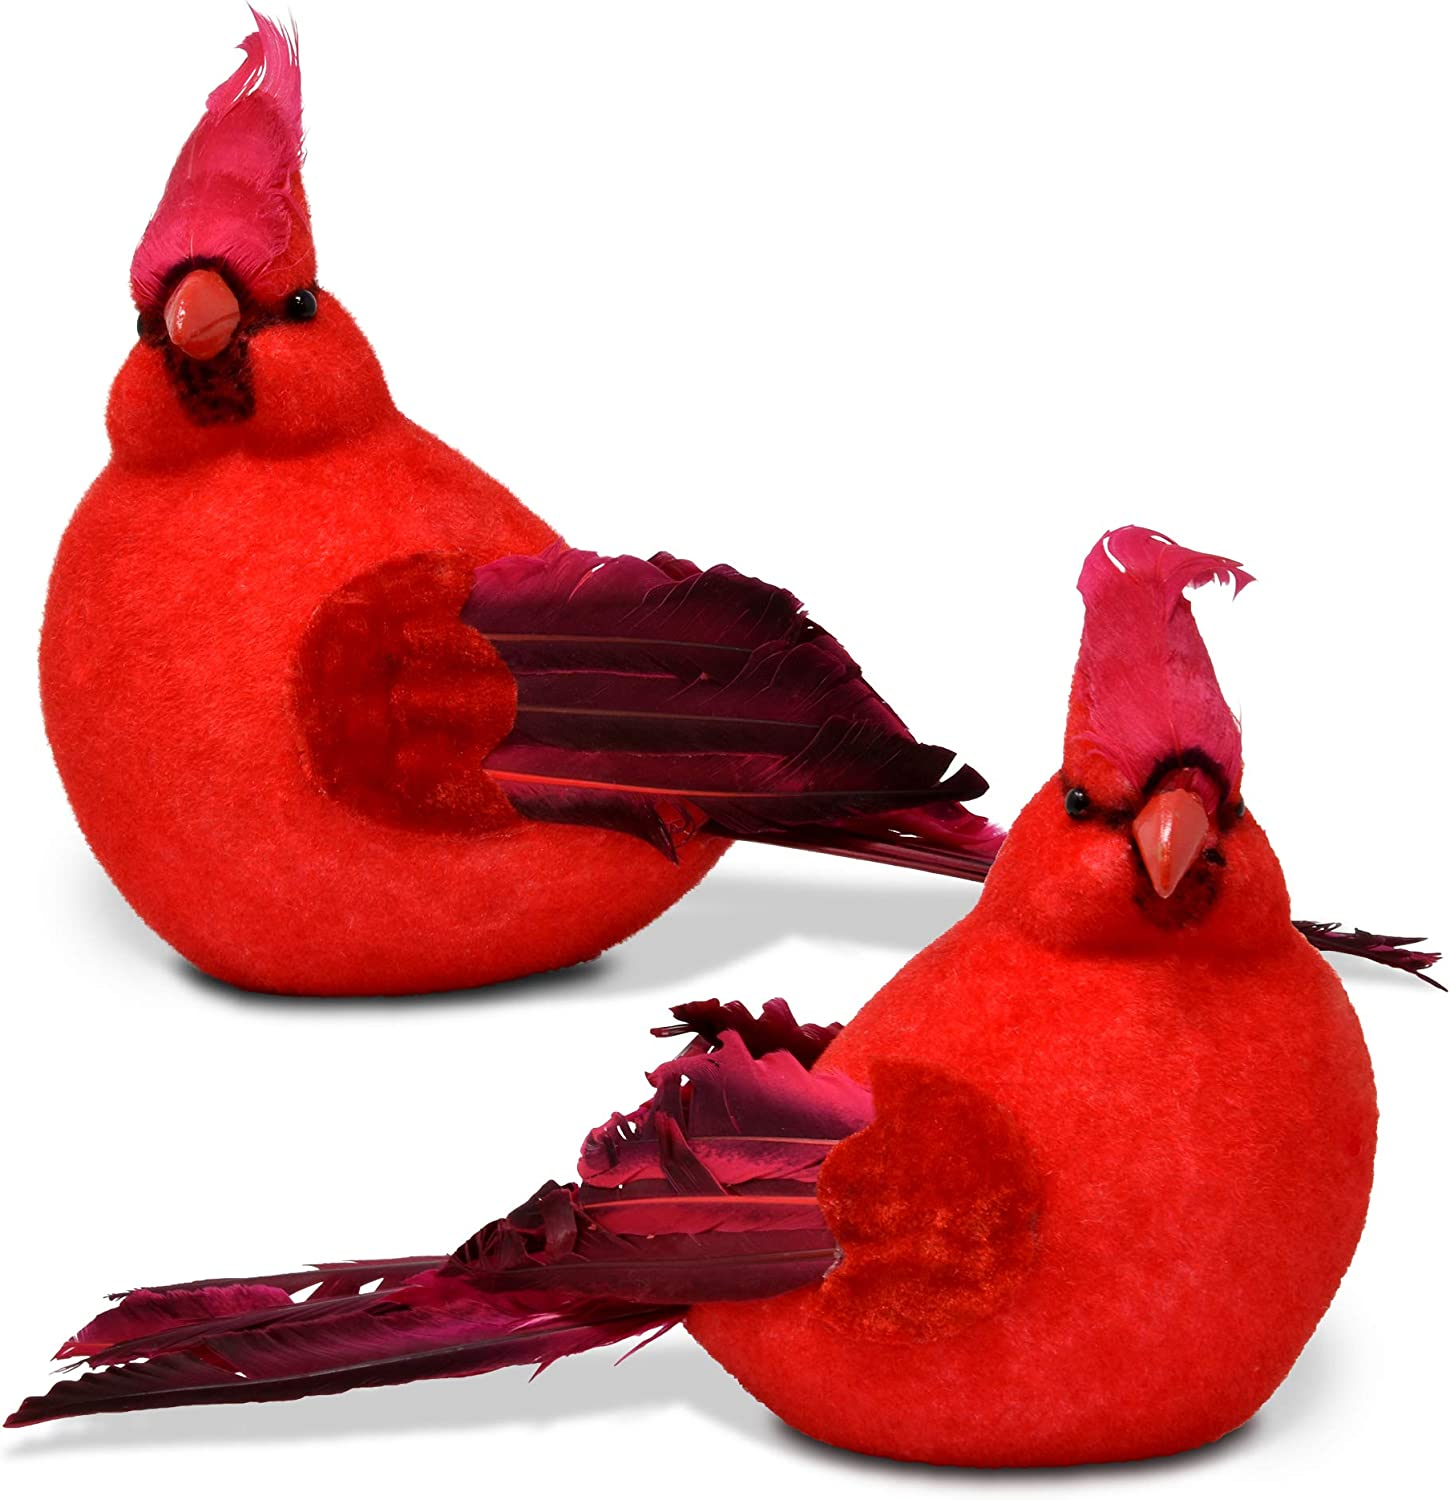 Gift Boutique Bright Red Artificial Christmas Cardinal Birds Set of 2 Realistic Feathered Velvet Cardinals Craft Decorations 11 Inch Cardinals Decor Home Table Shelf Desk Fireplace Mantle